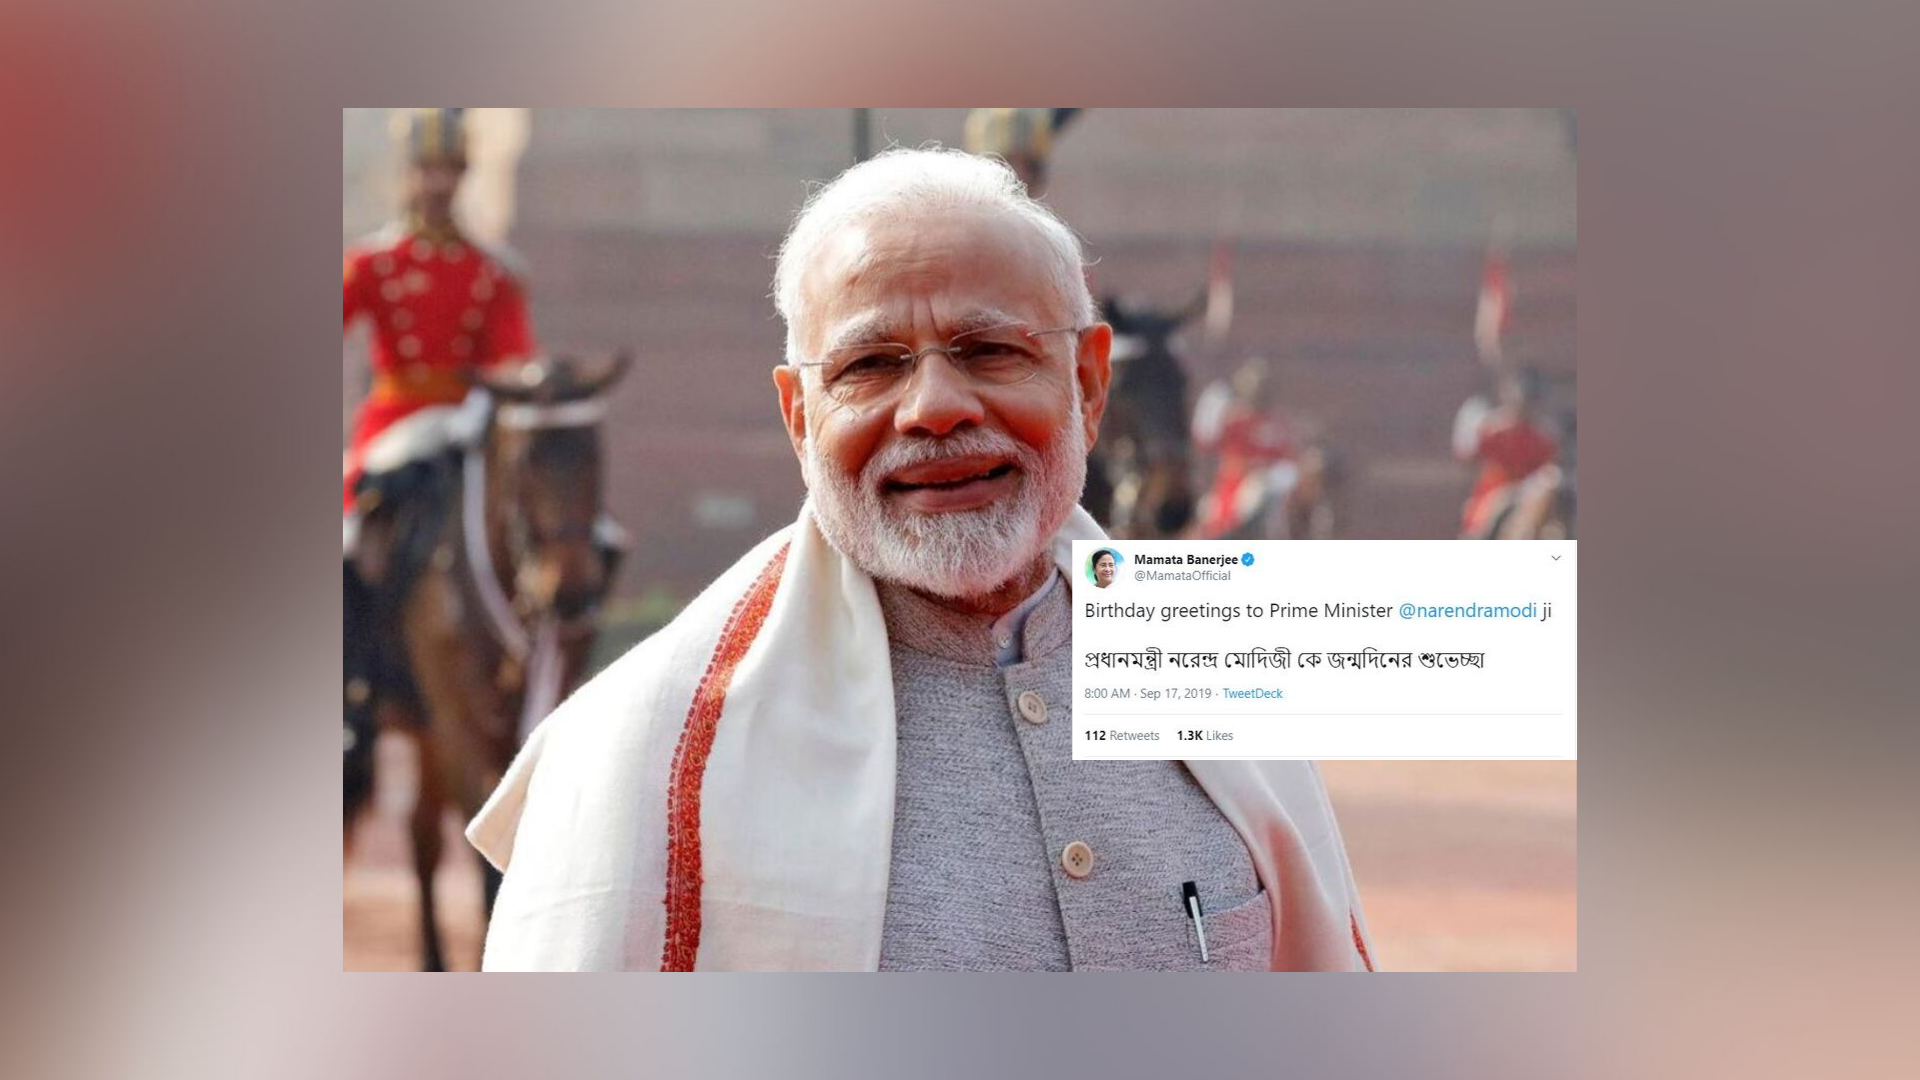 From Leaders To Celebrities, Wishes Pour In On PM Modi's Birthday